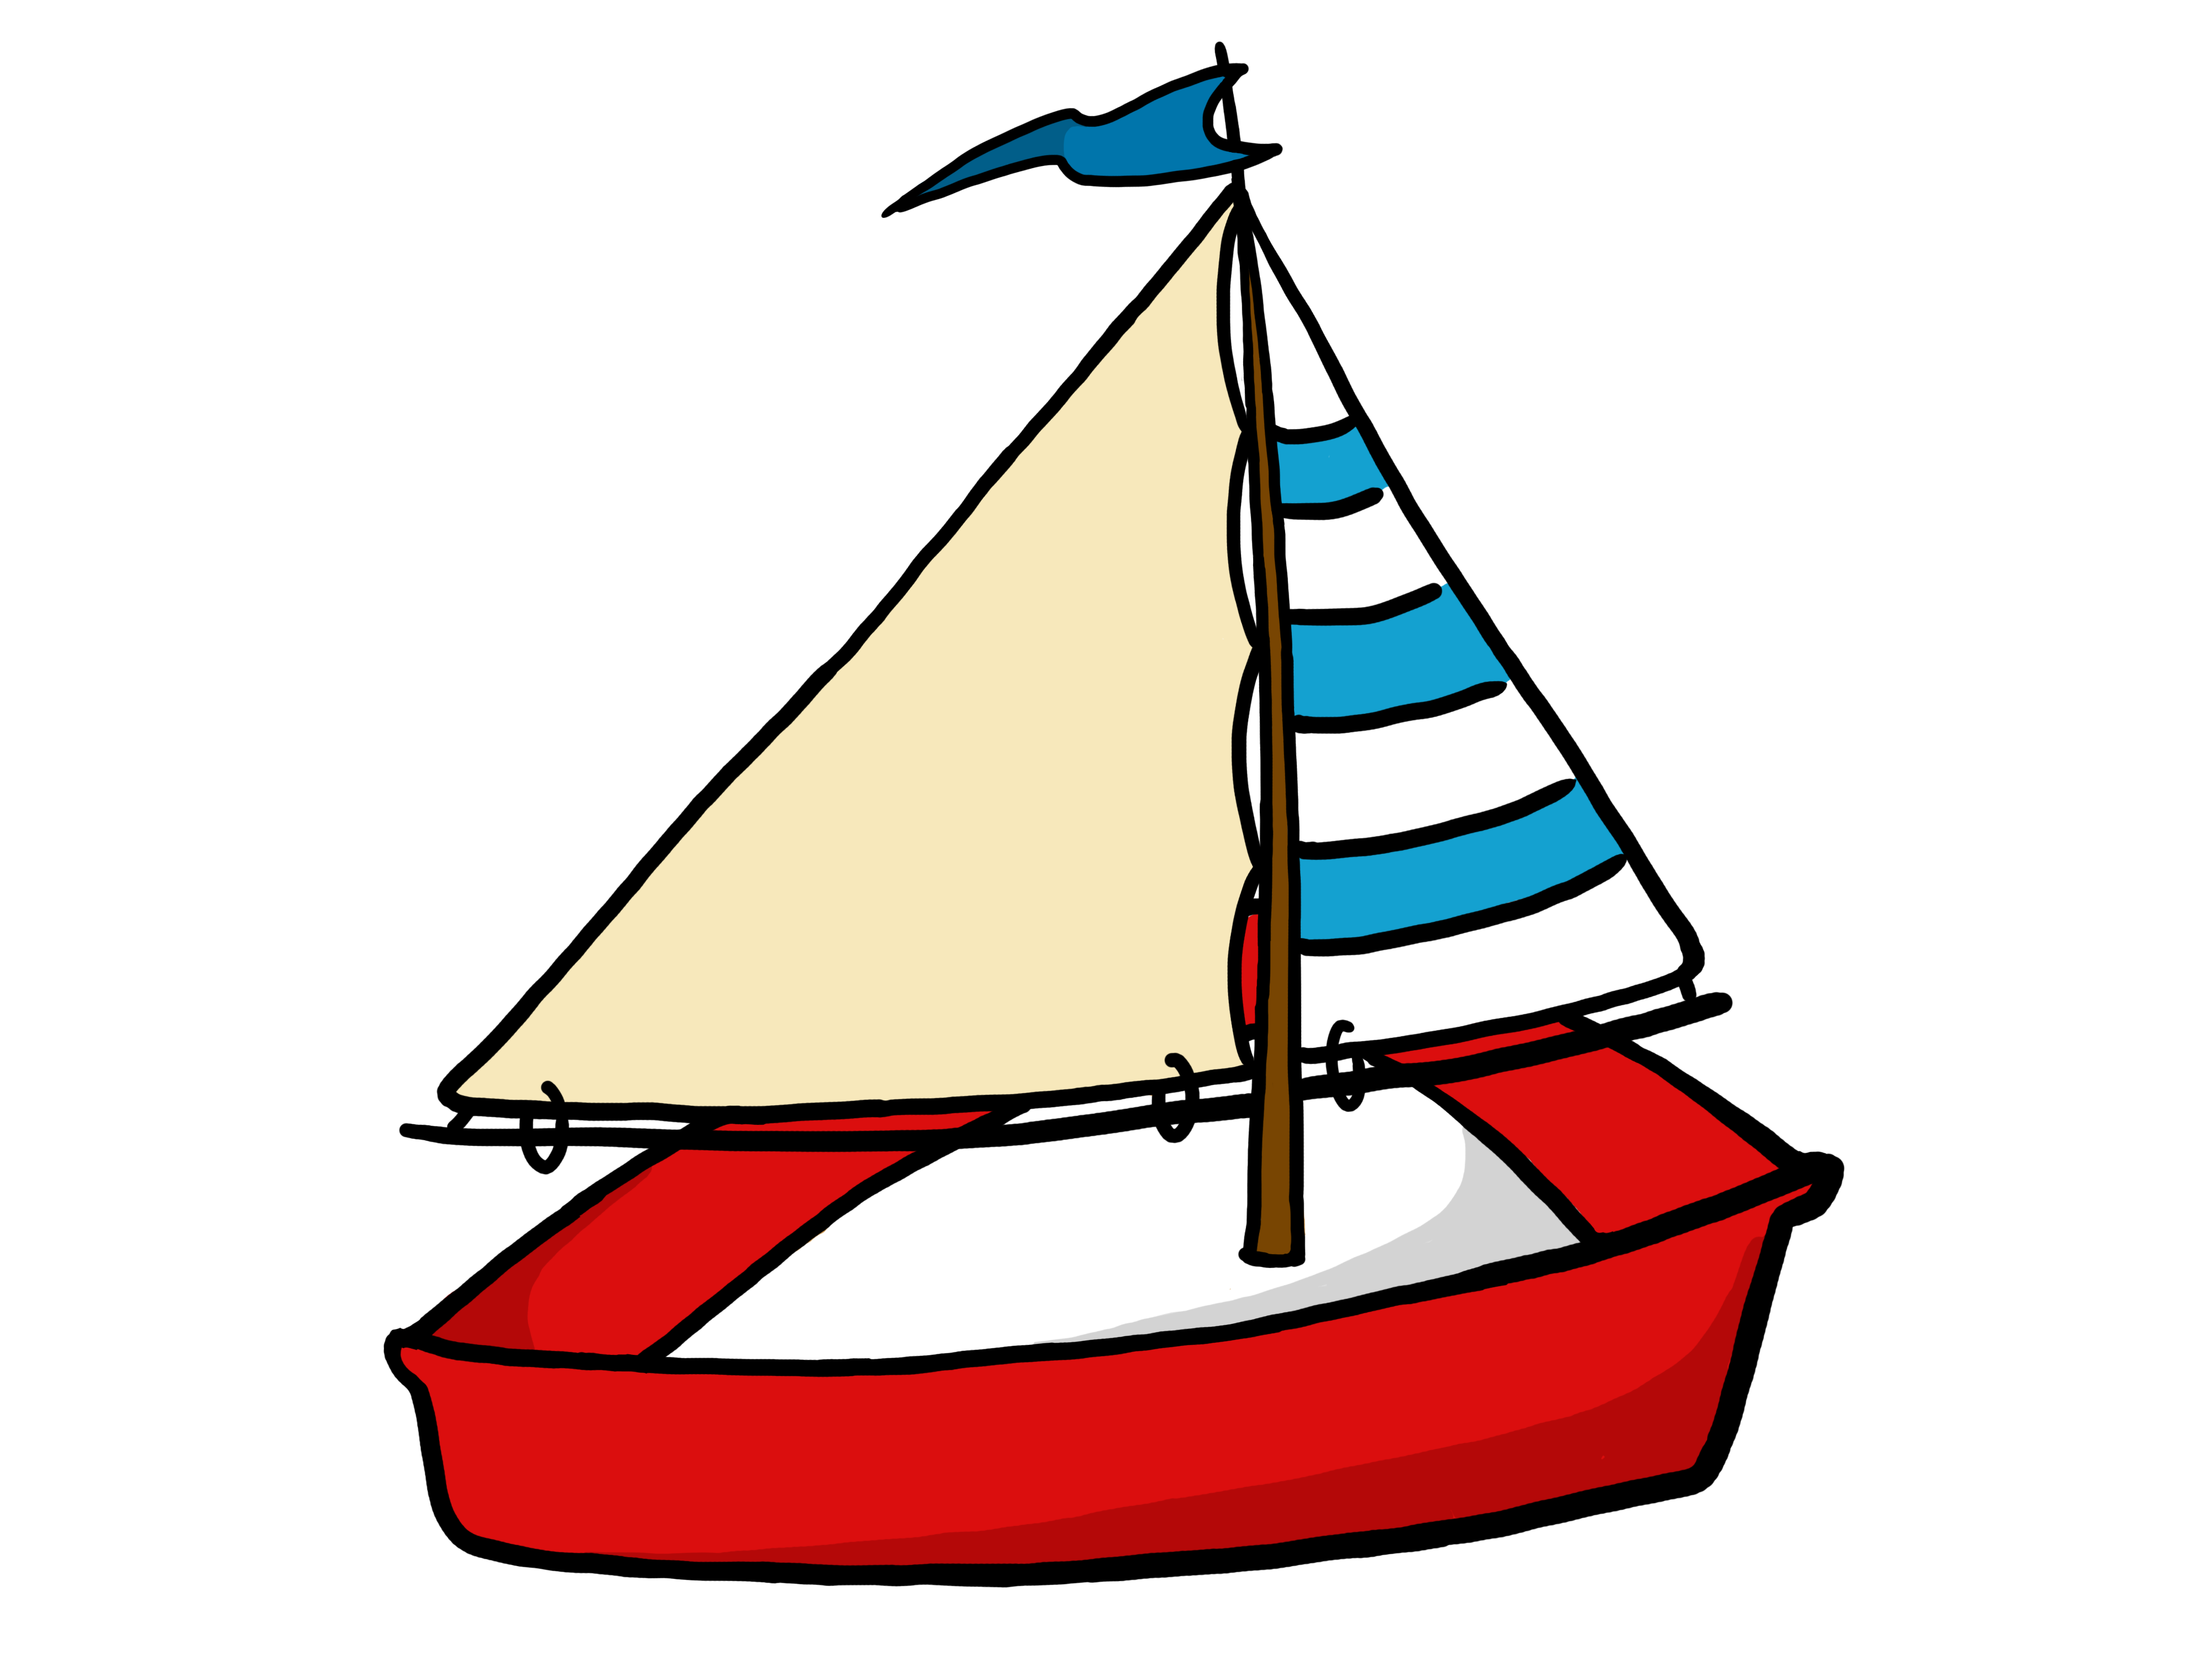 4000x3000 Boating Clipart Clipart Panda Free Clipart Images Morze